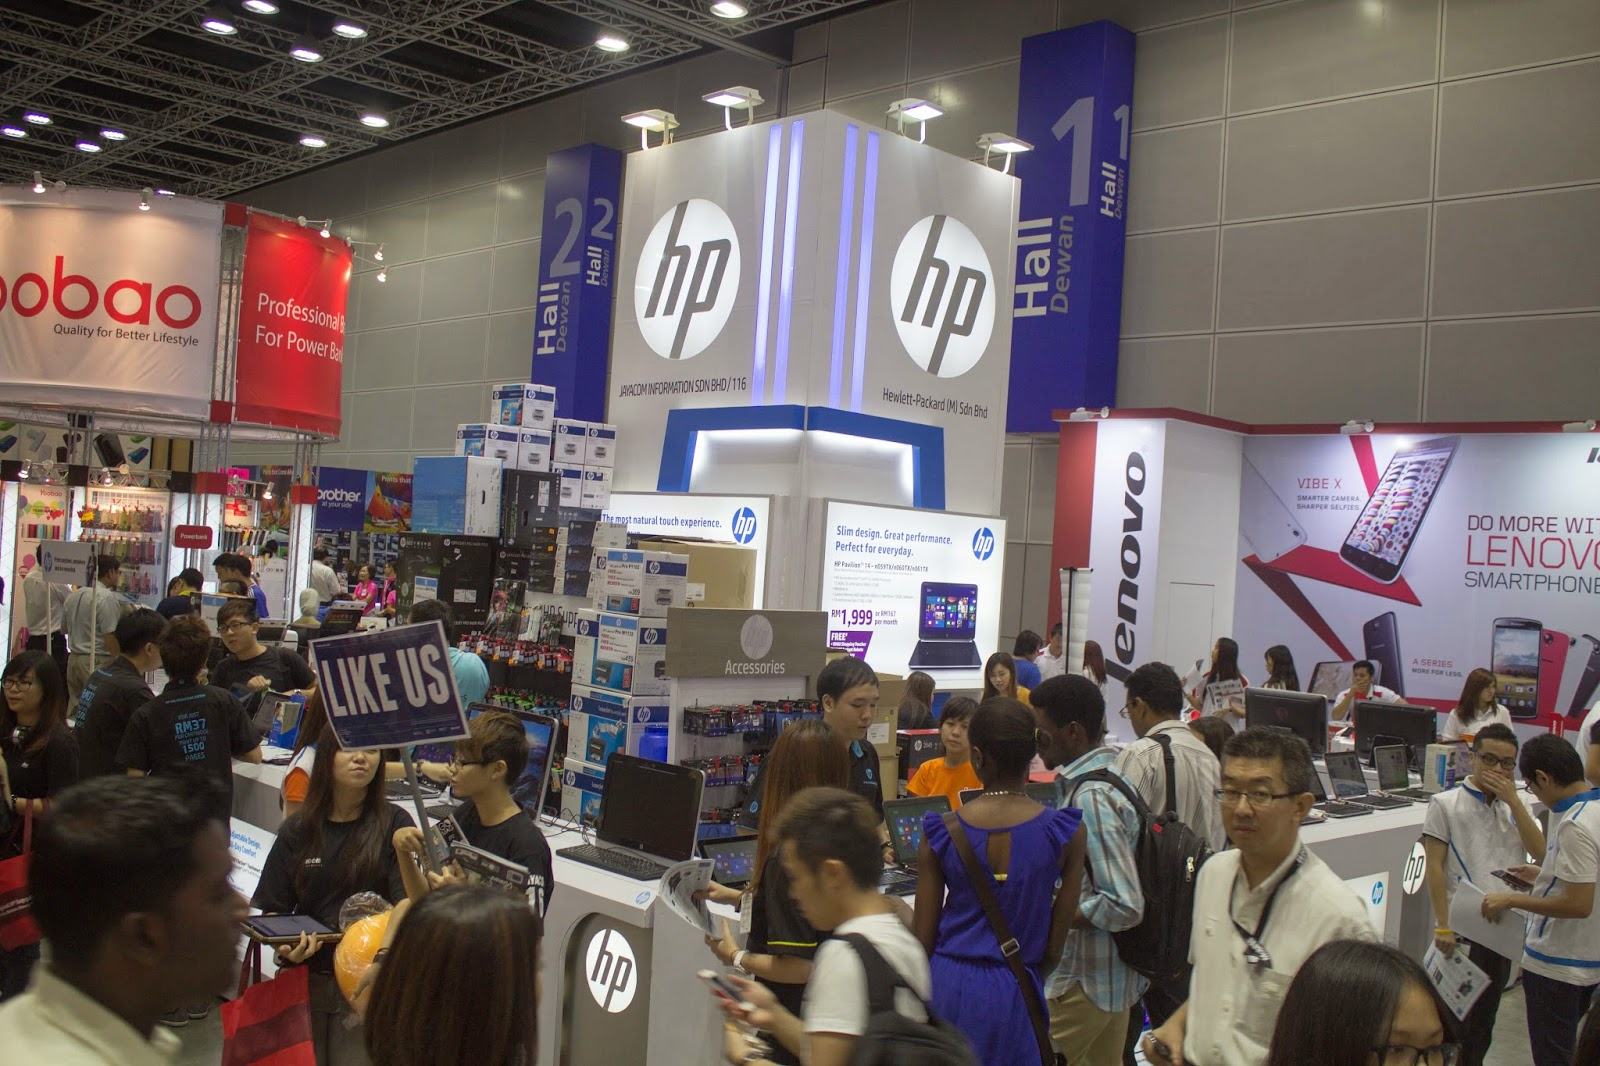 Coverage of PIKOM PC Fair 2014 @ Kuala Lumpur Convention Center 307